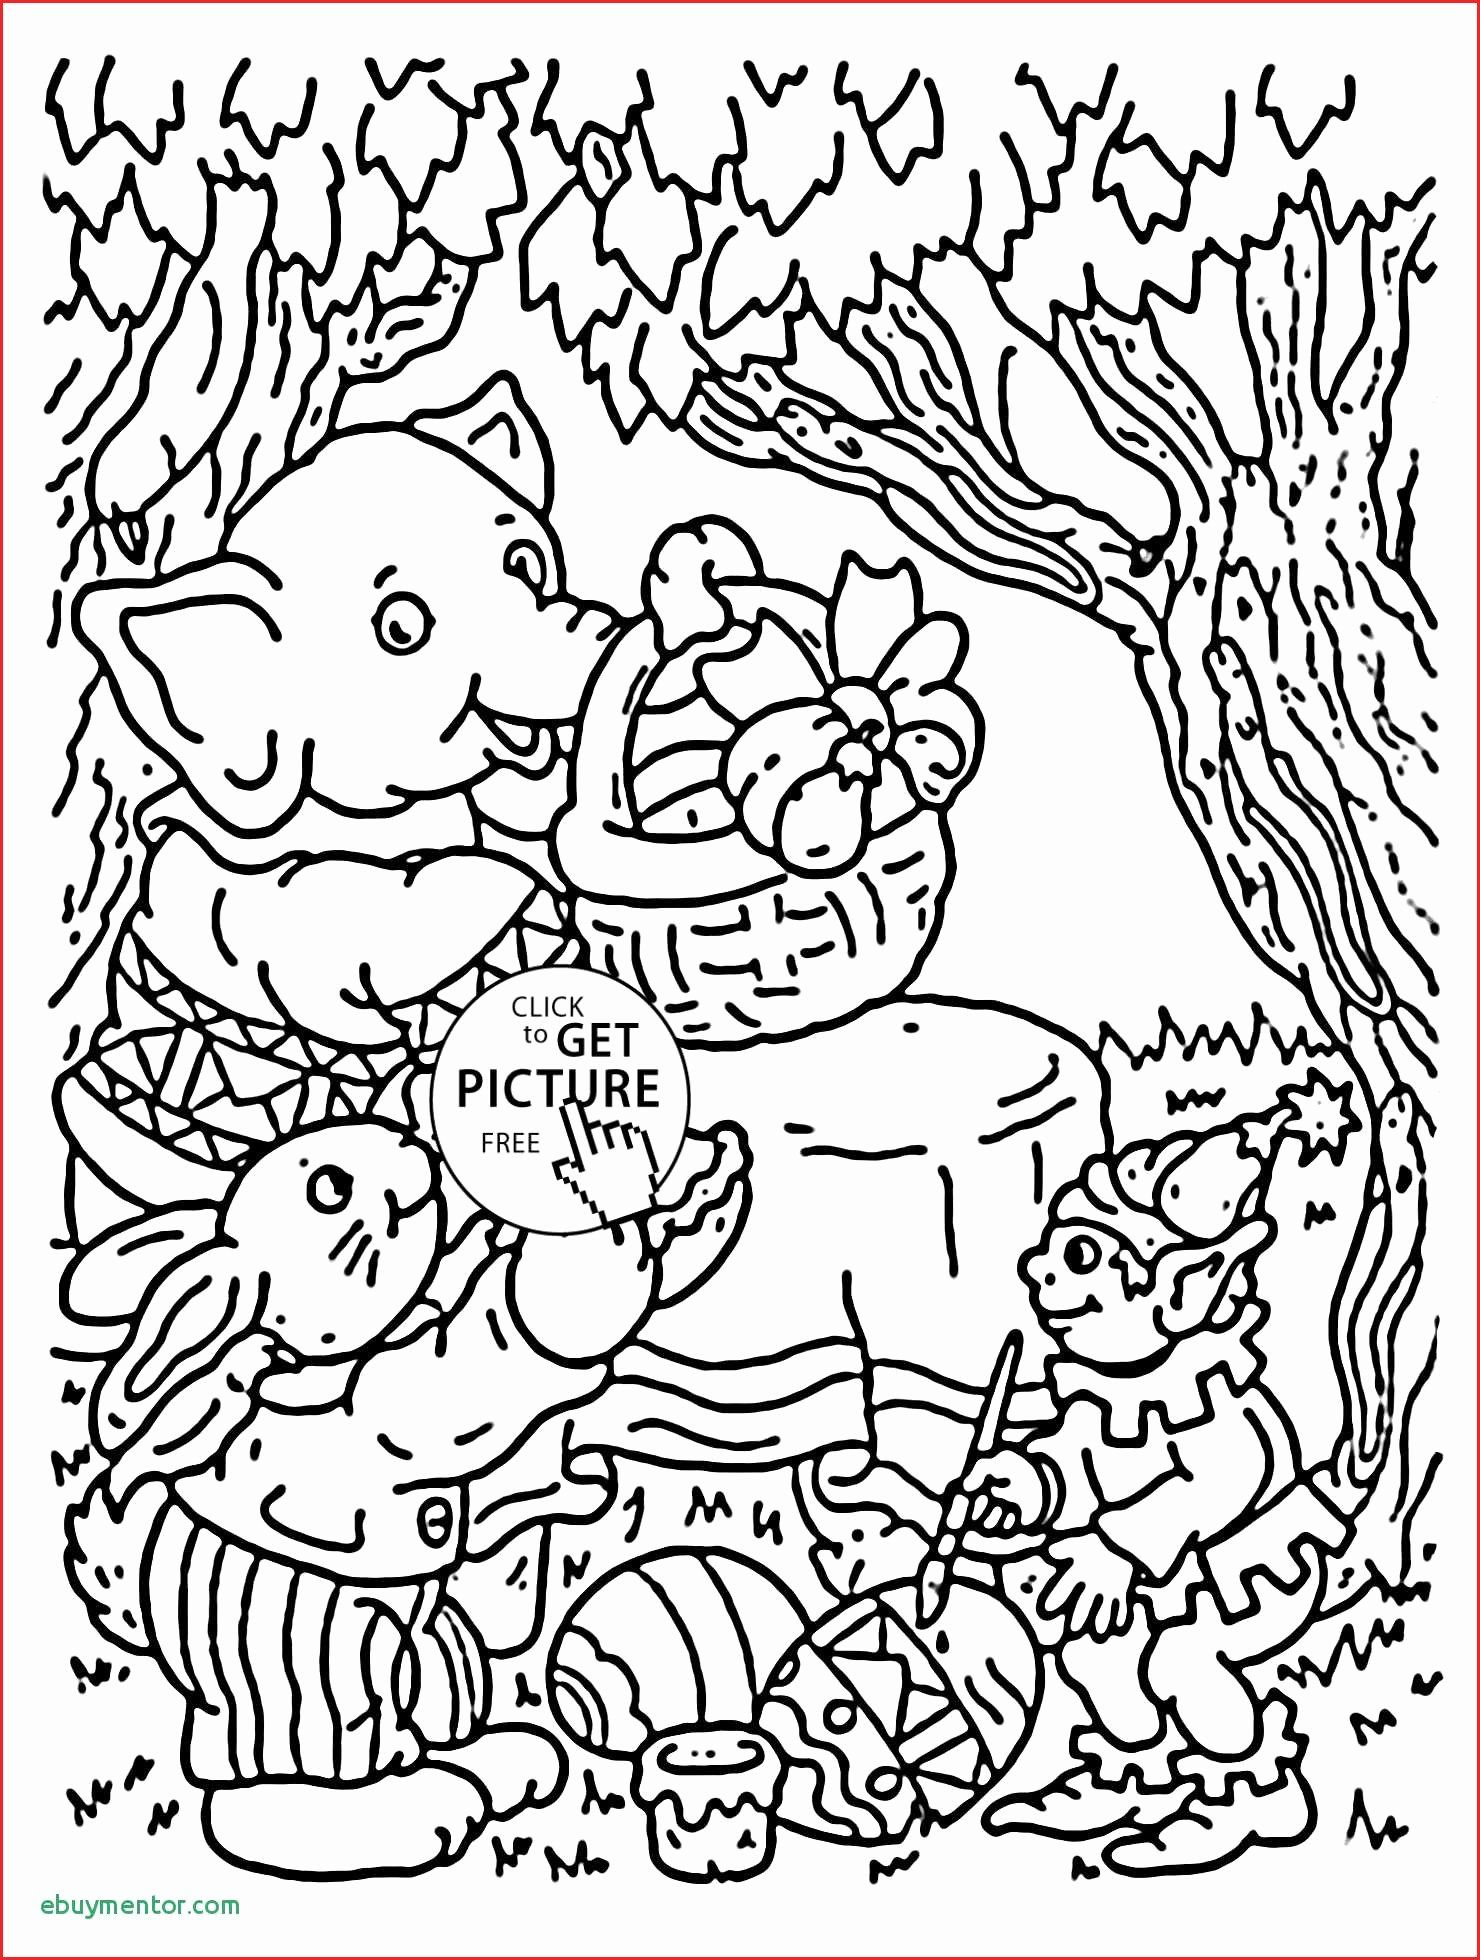 Coloring Page Of Dragons In 2020 Princess Coloring Pages Dolphin Coloring Pages Coloring Pages For Boys